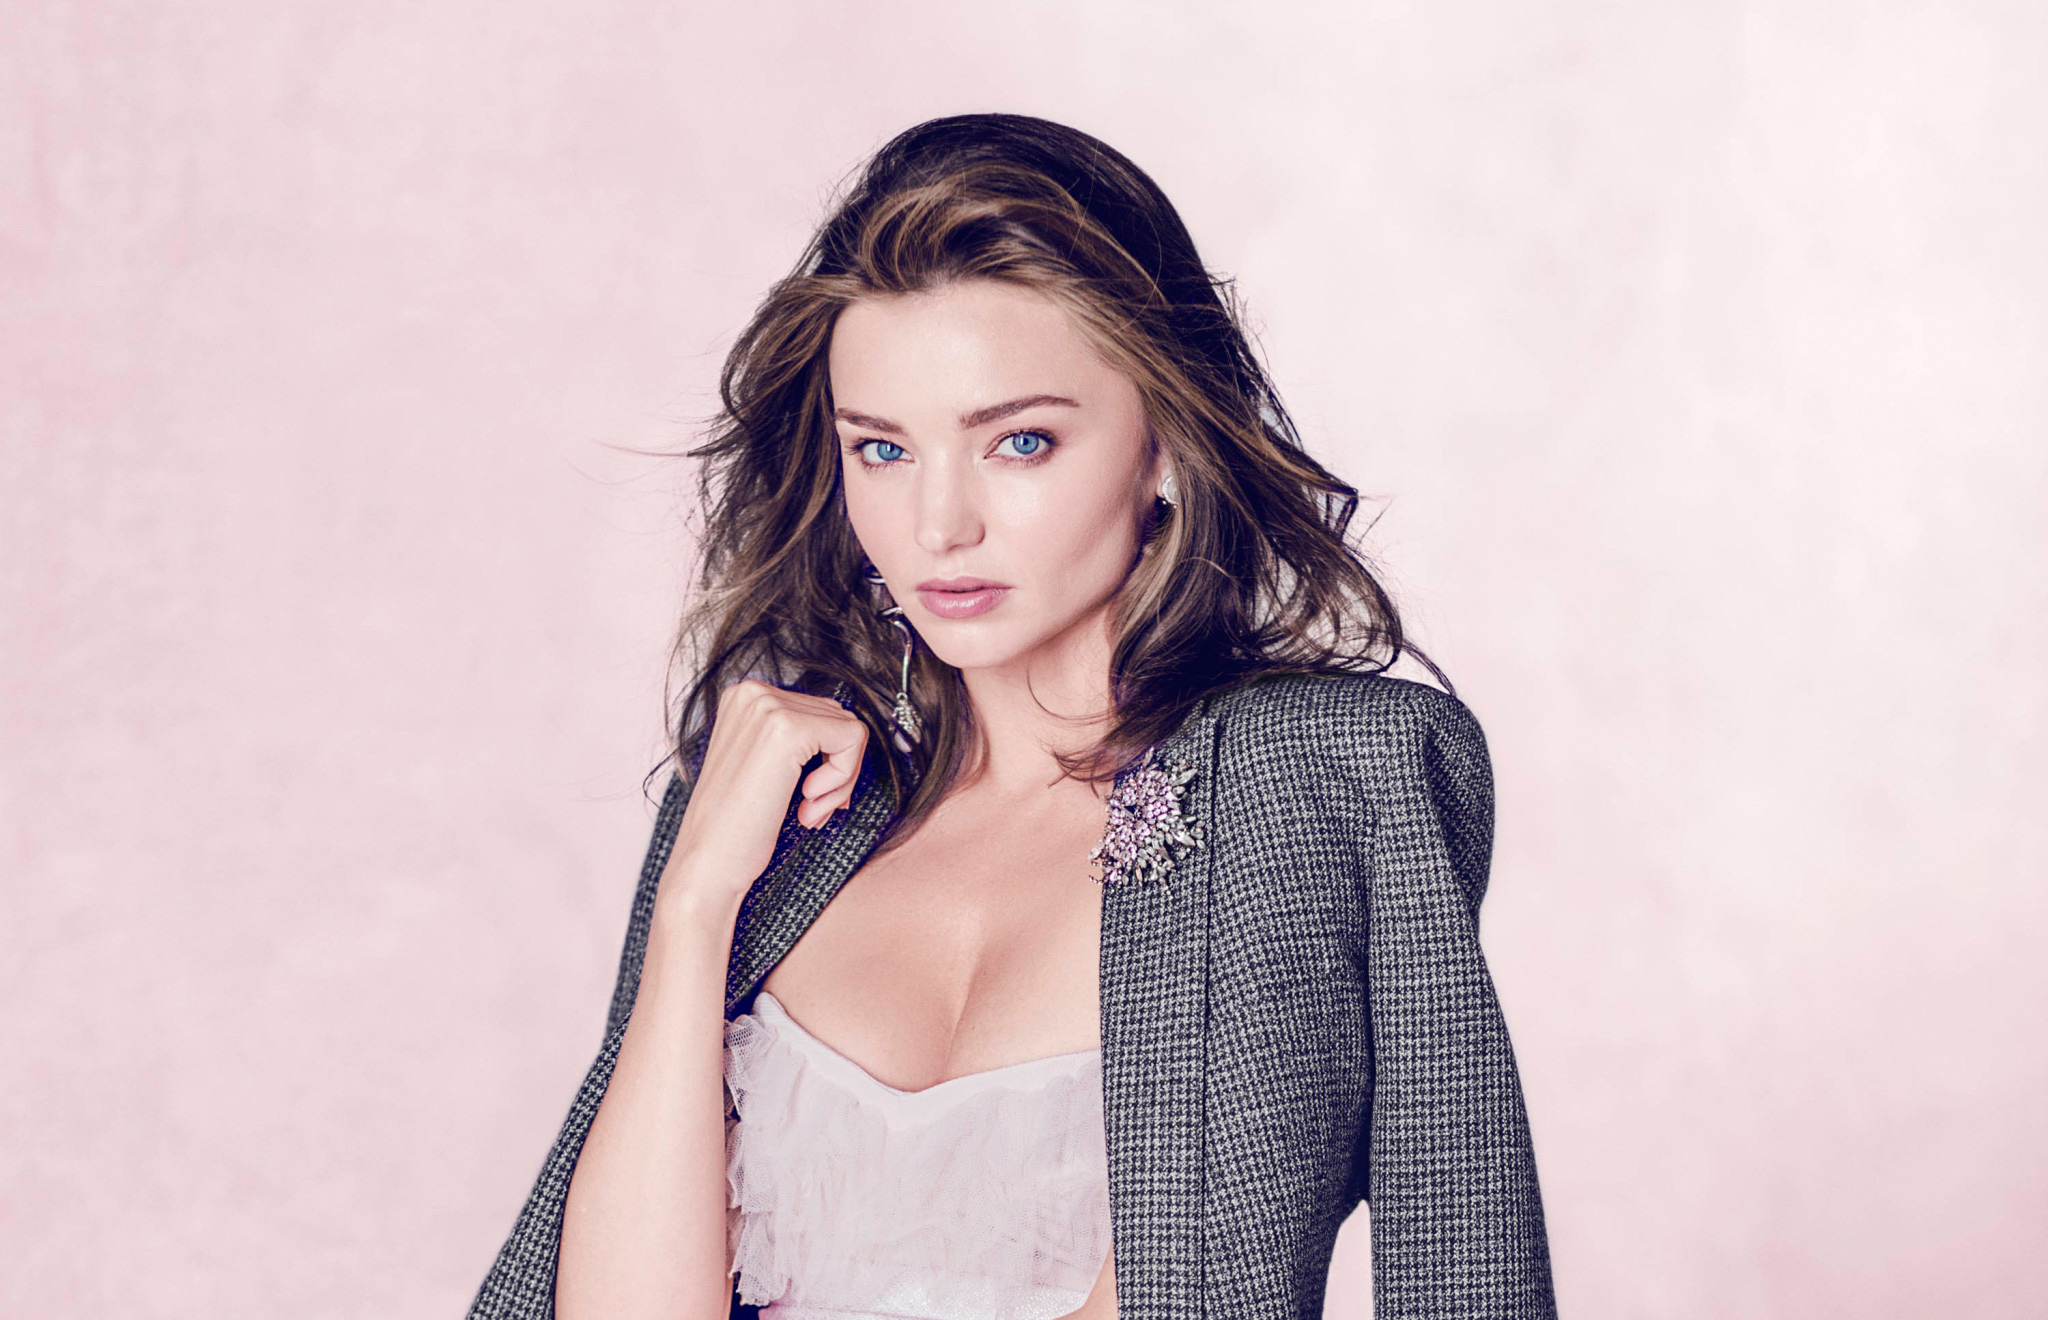 miranda kerr vogue hd, hd celebrities, 4k wallpapers, images